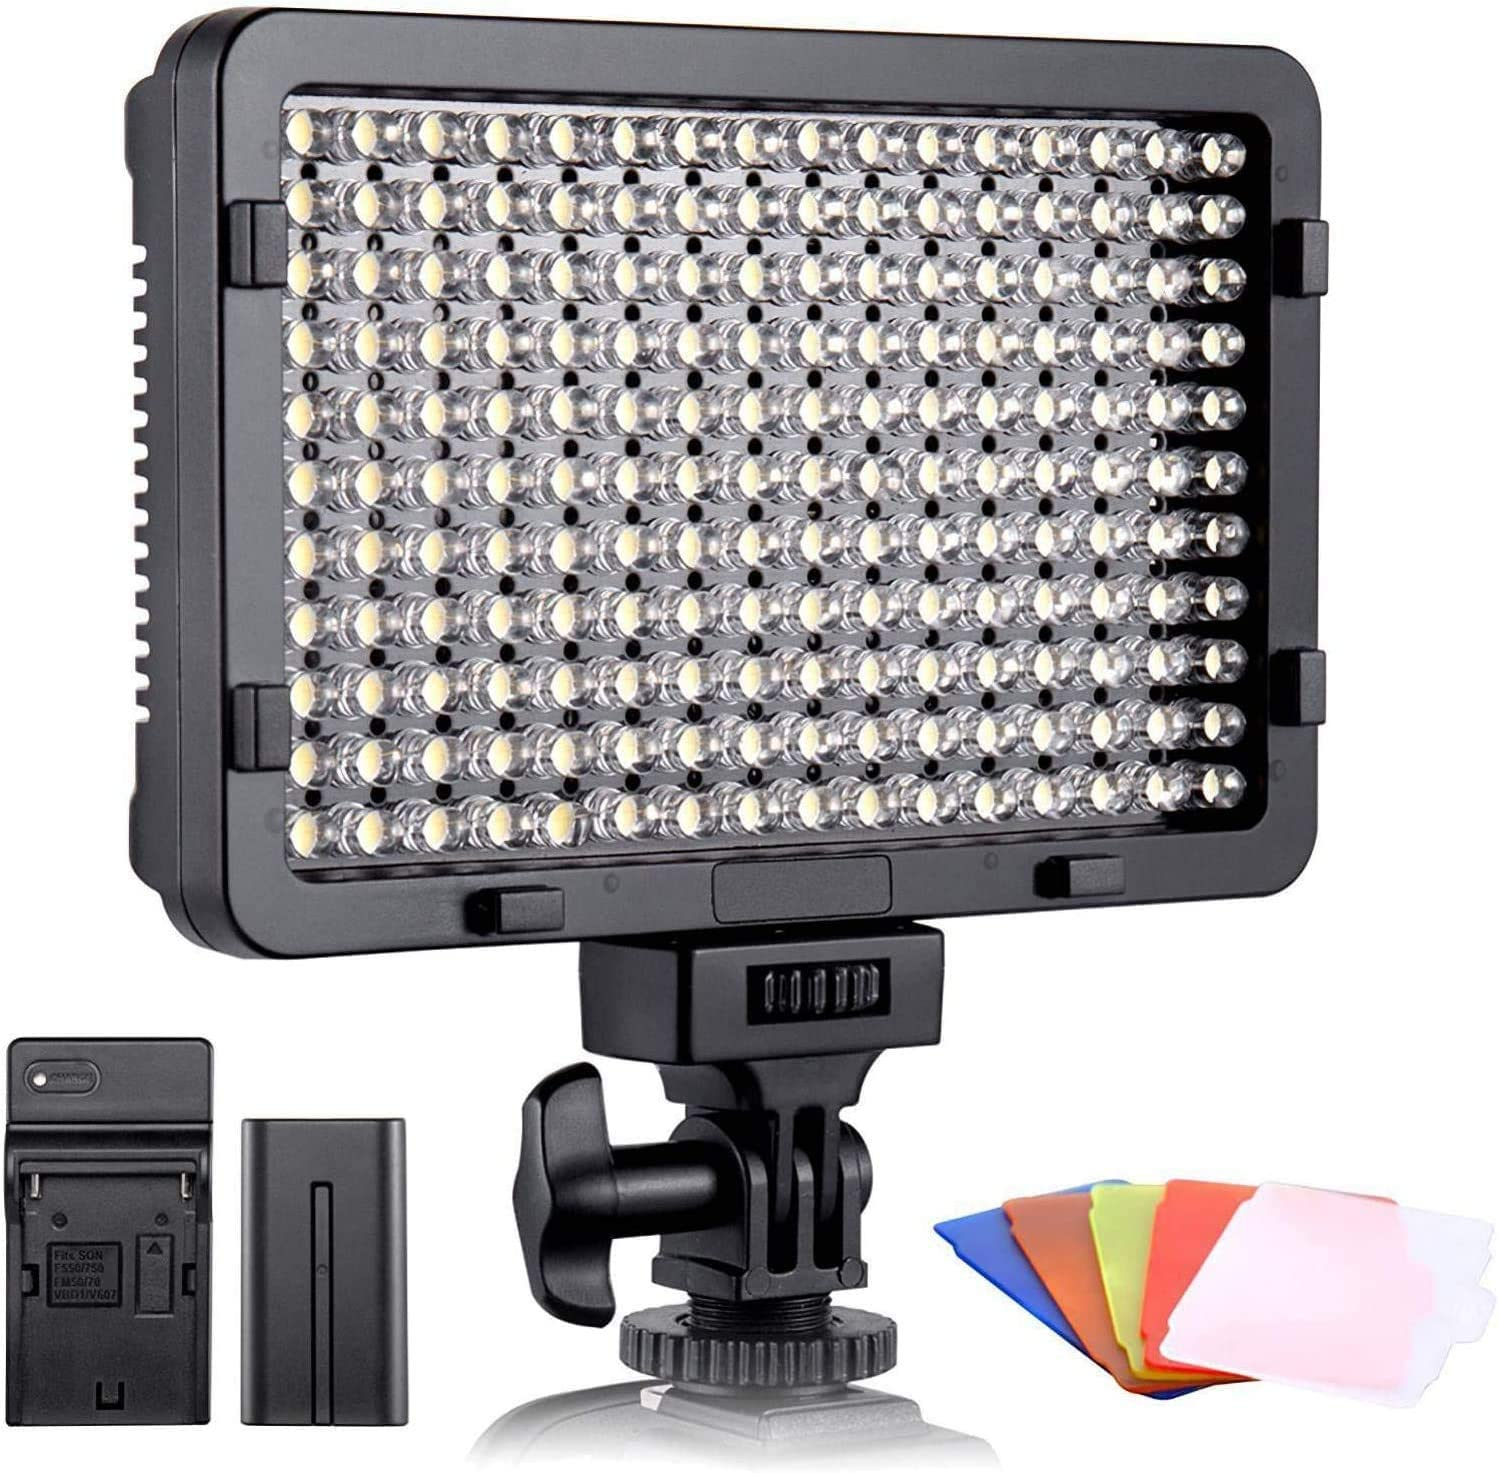 ESDDI LED Video Light, 176 LED Ultra Bright Dimmable CRI 95+ Camera Light with Battery Set and 5 Color Filters for DSLR Cameras Camcorder : Camera & Photo